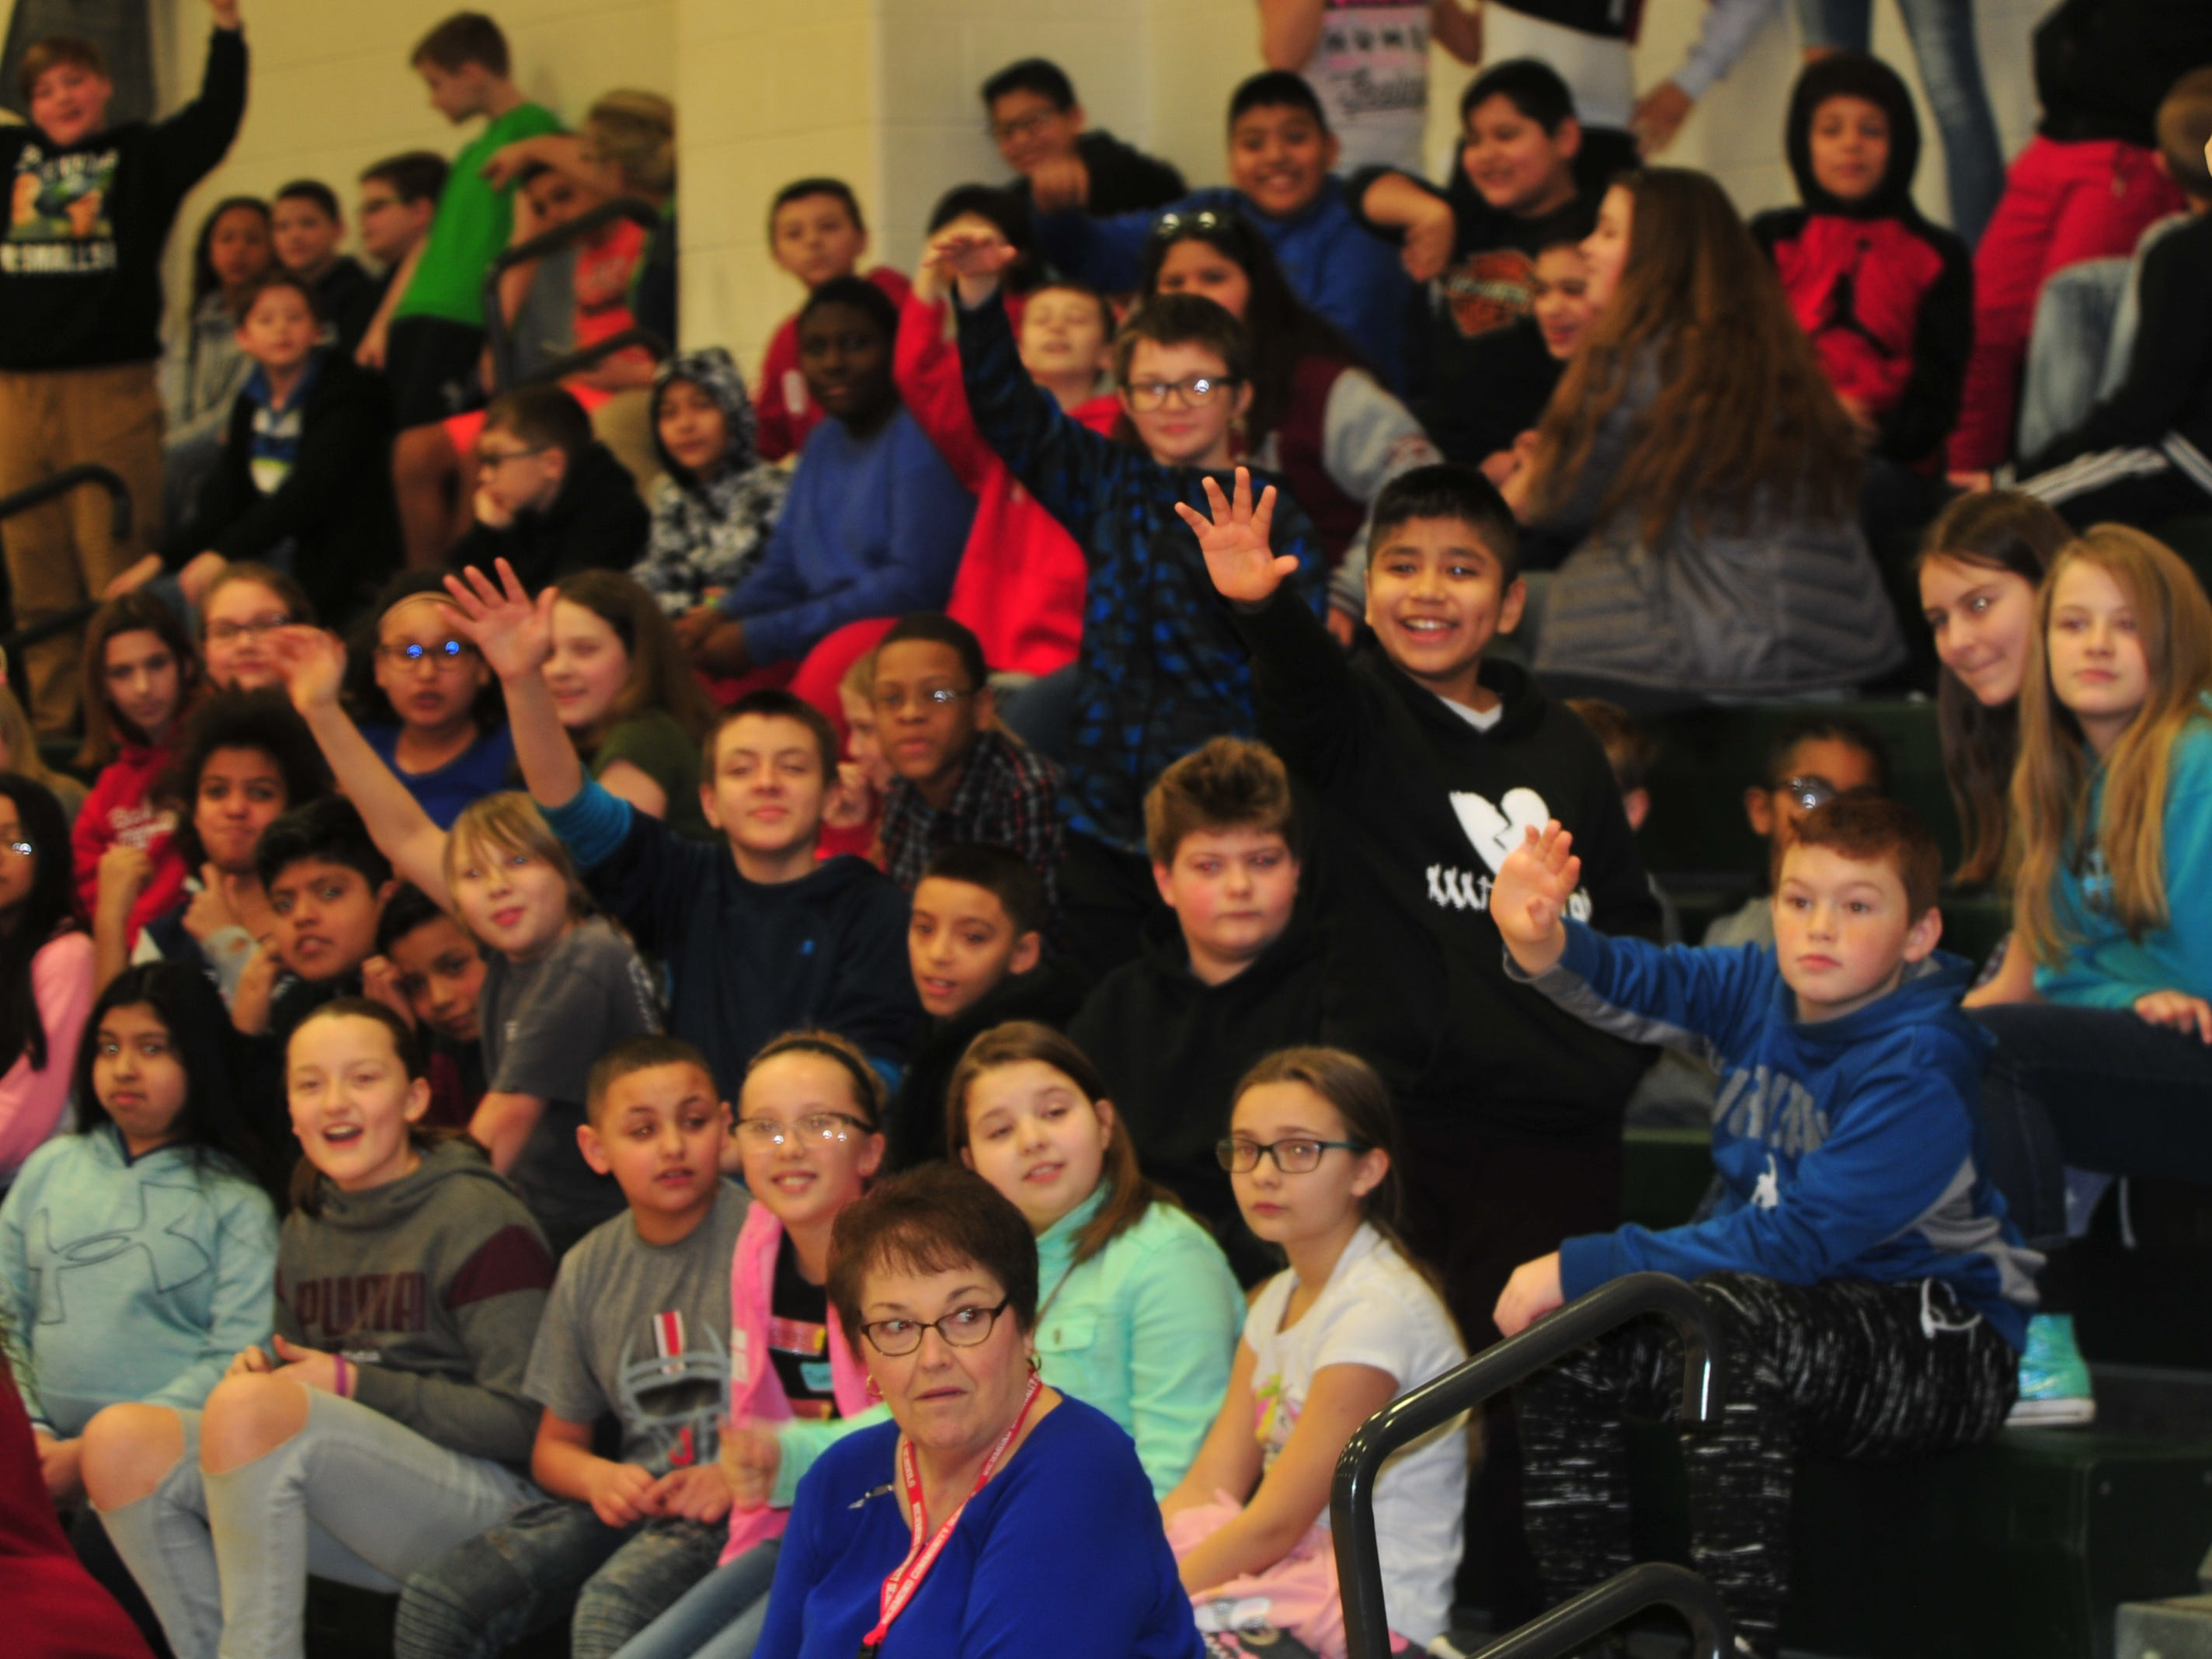 Dennis Intermediate School students attempt to attract Boomer's attention during Wednesday's program.